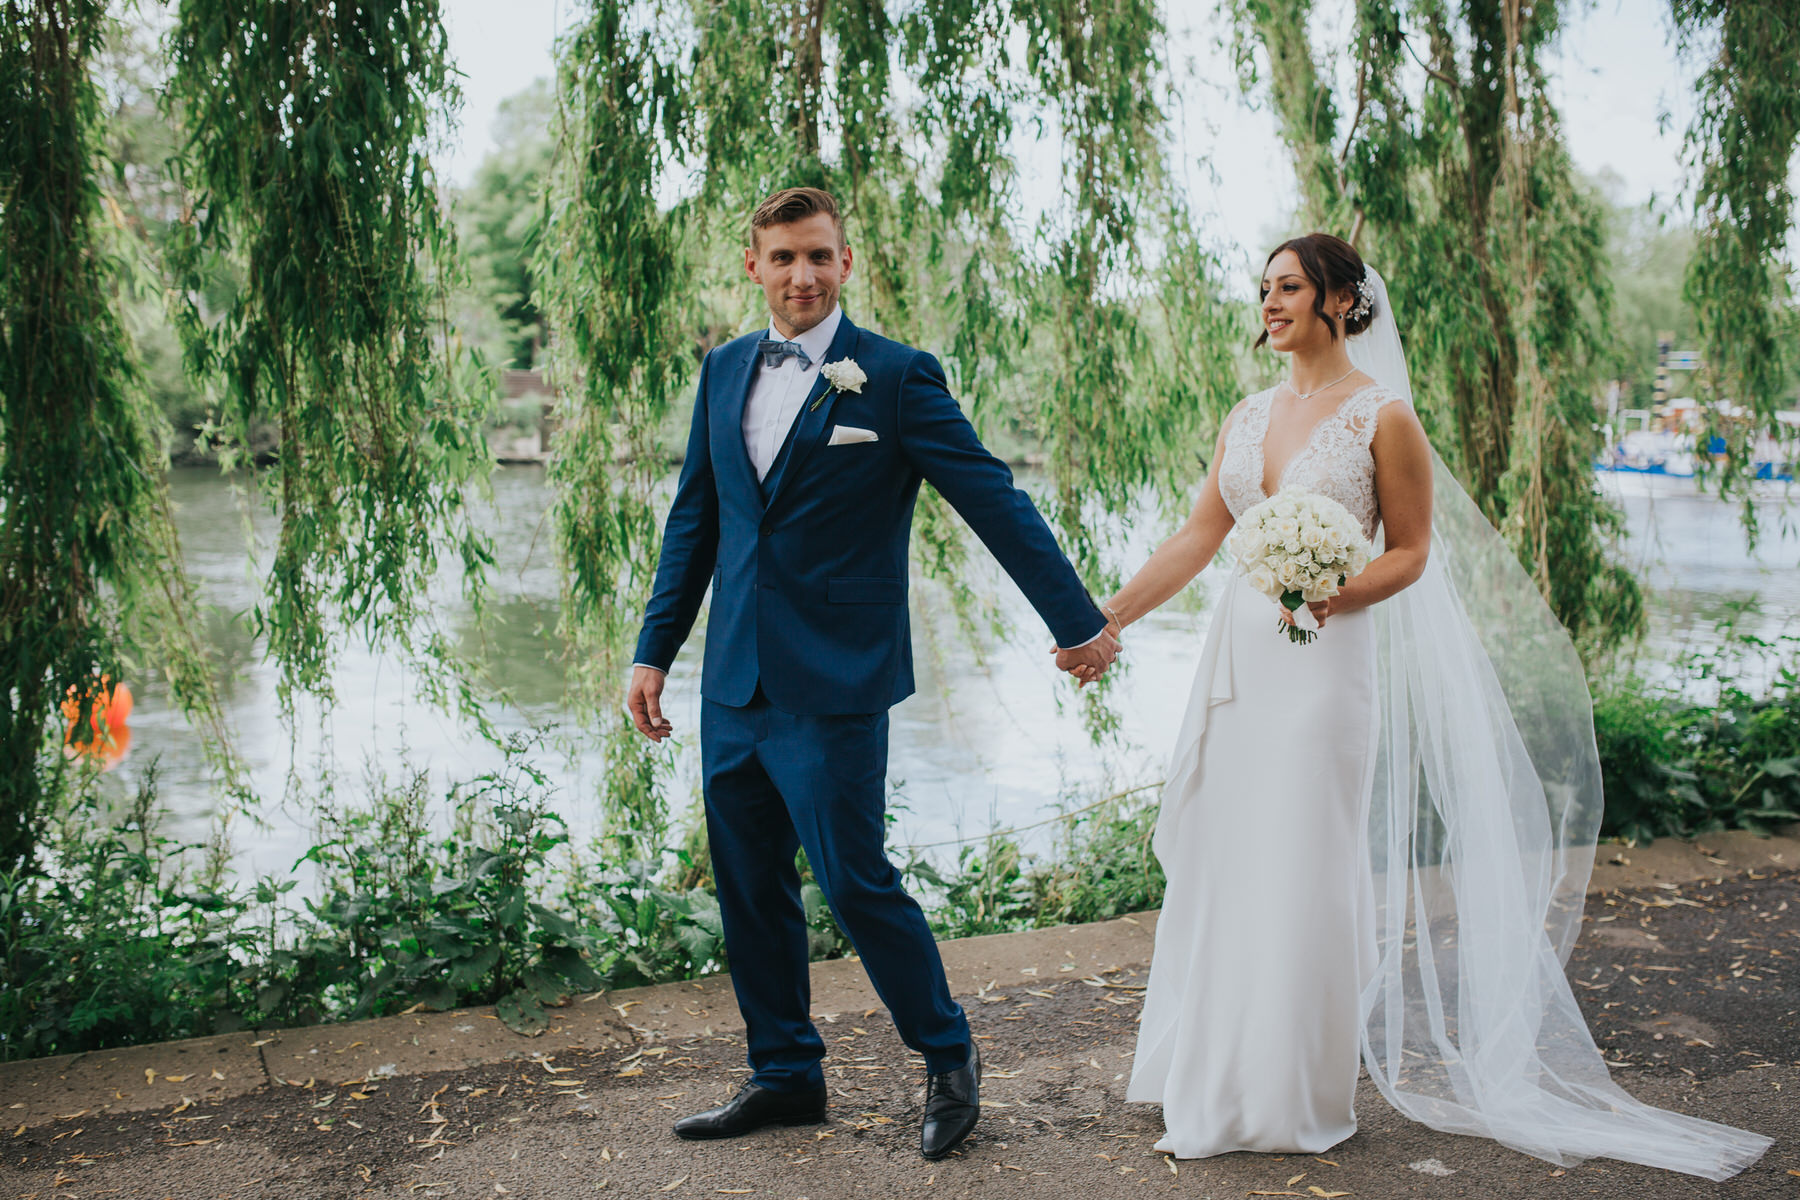 Bingham Hotel Richmond wedding photographer groom leads bride Thames towpath.jpg